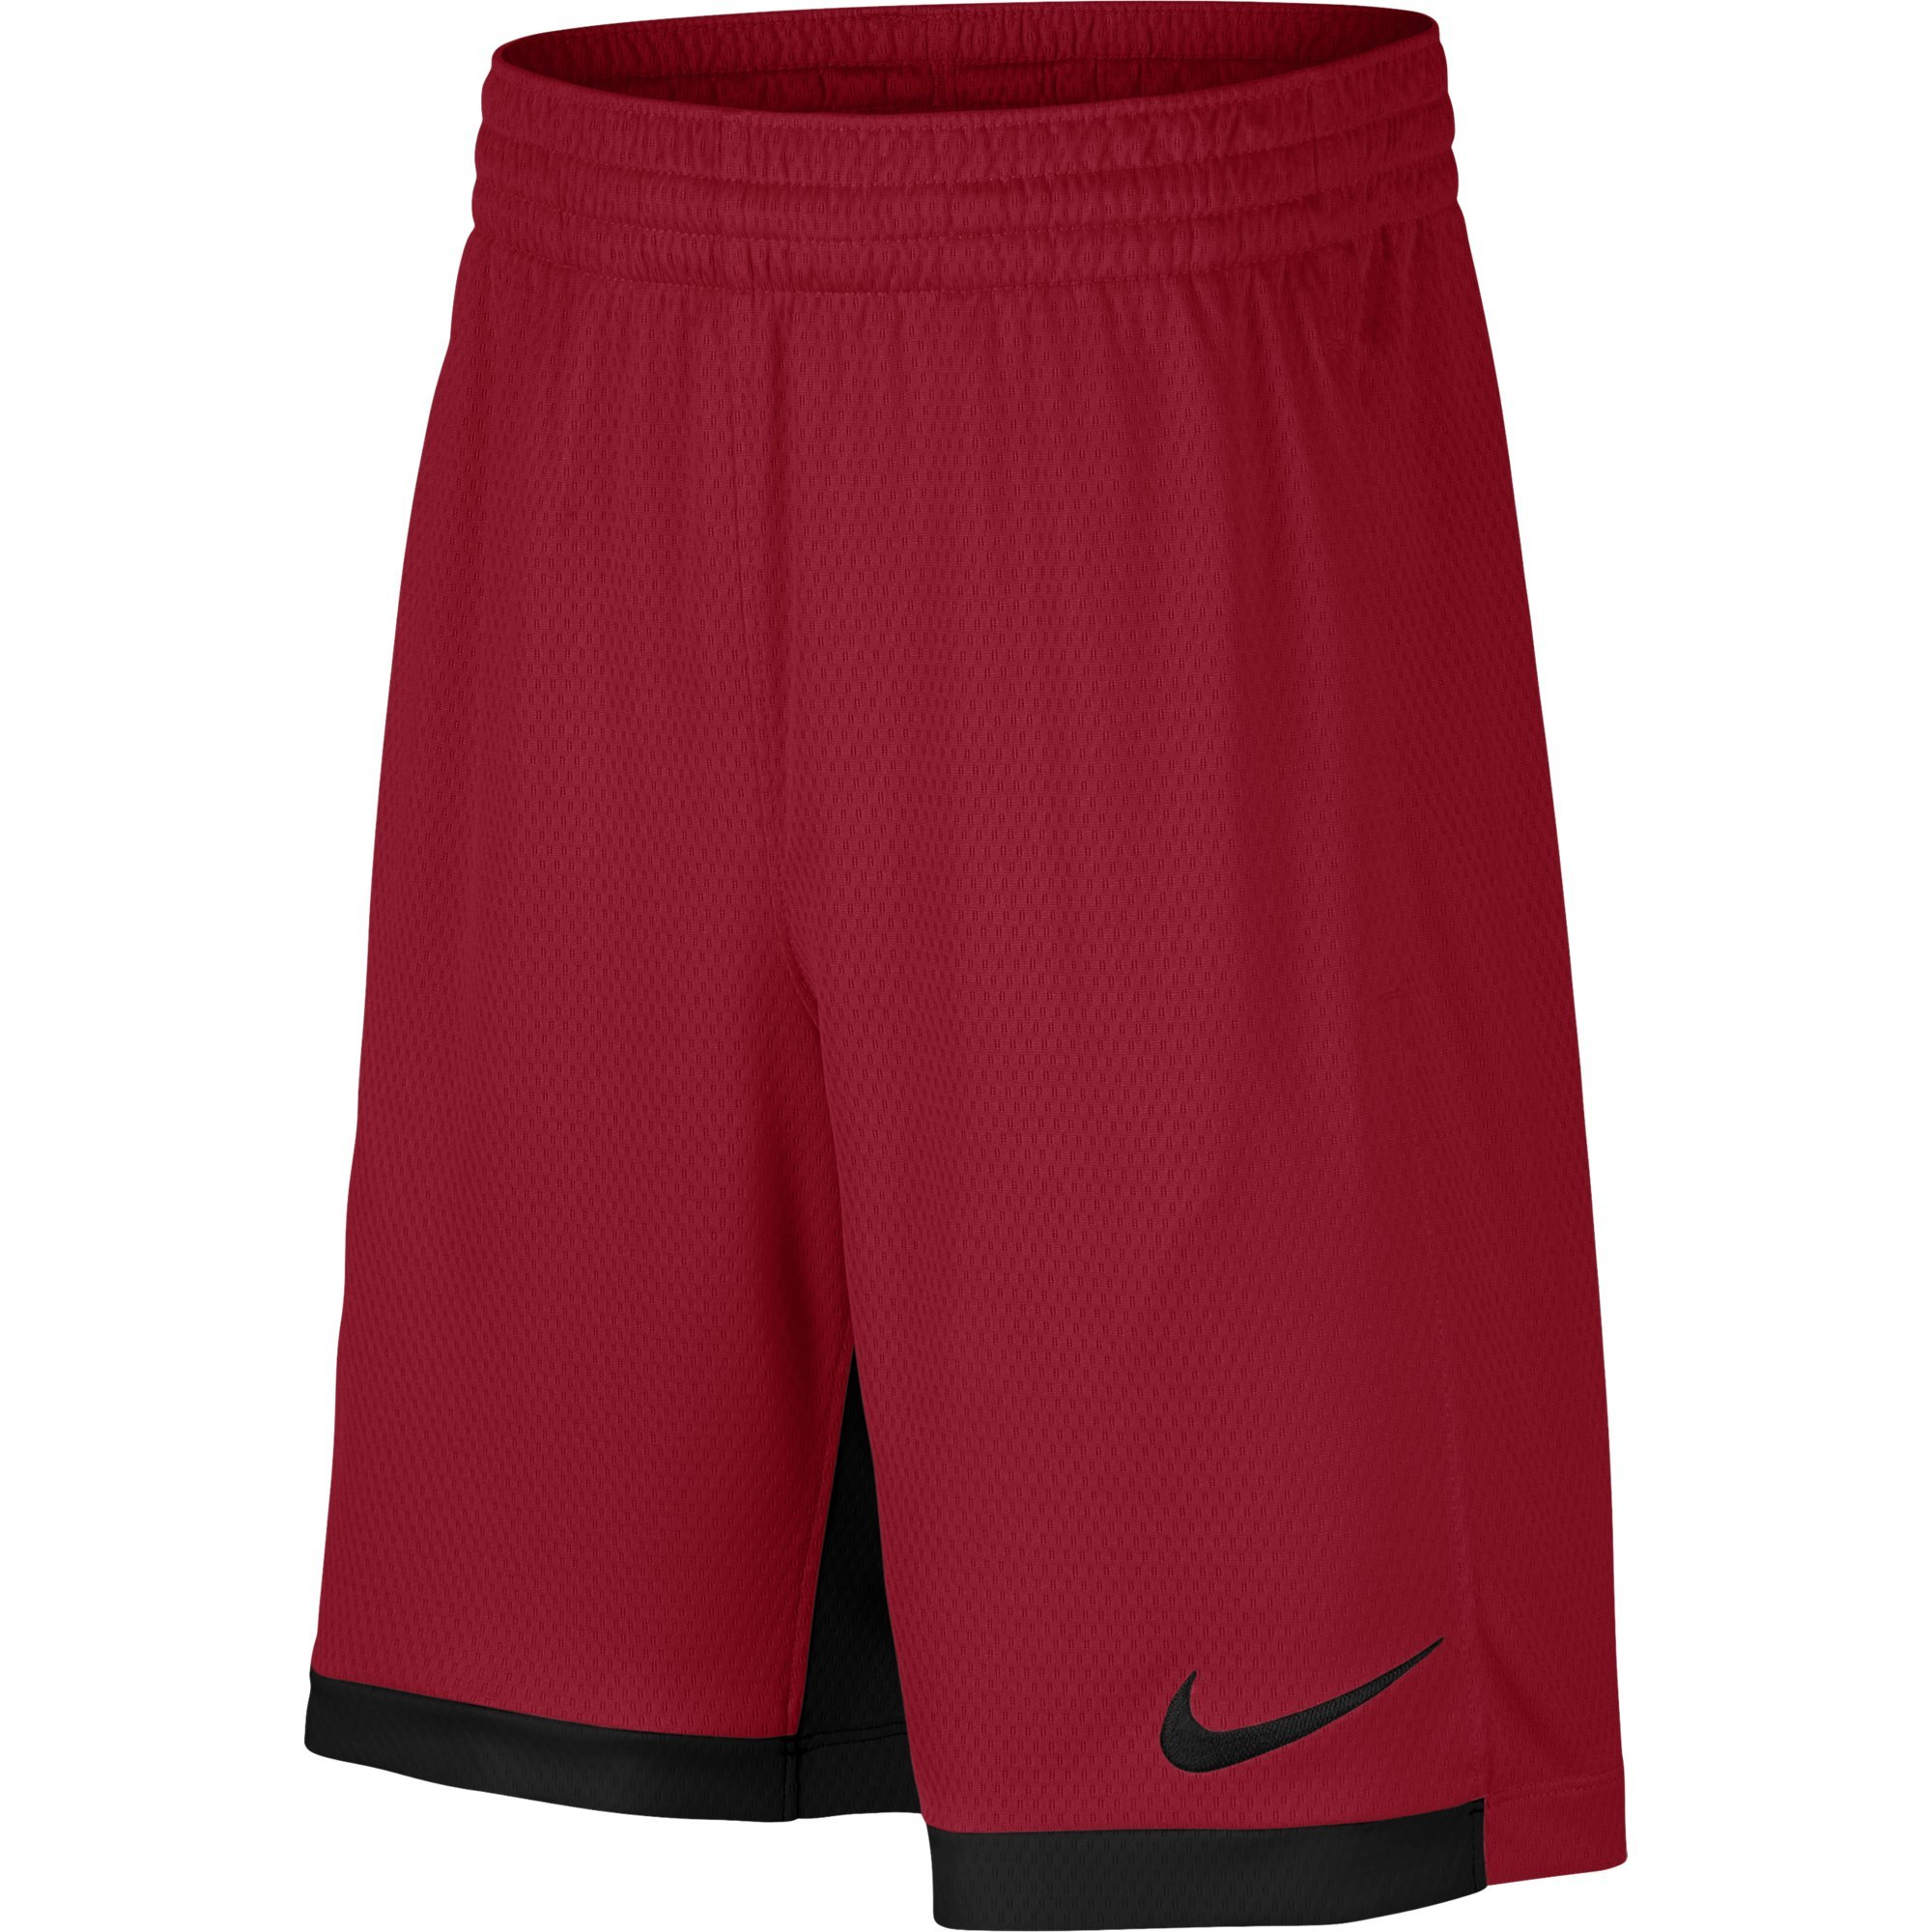 NIKE Boys' Dry Trophy Athletic Shorts, Gym Red/Black/Black, X-Small